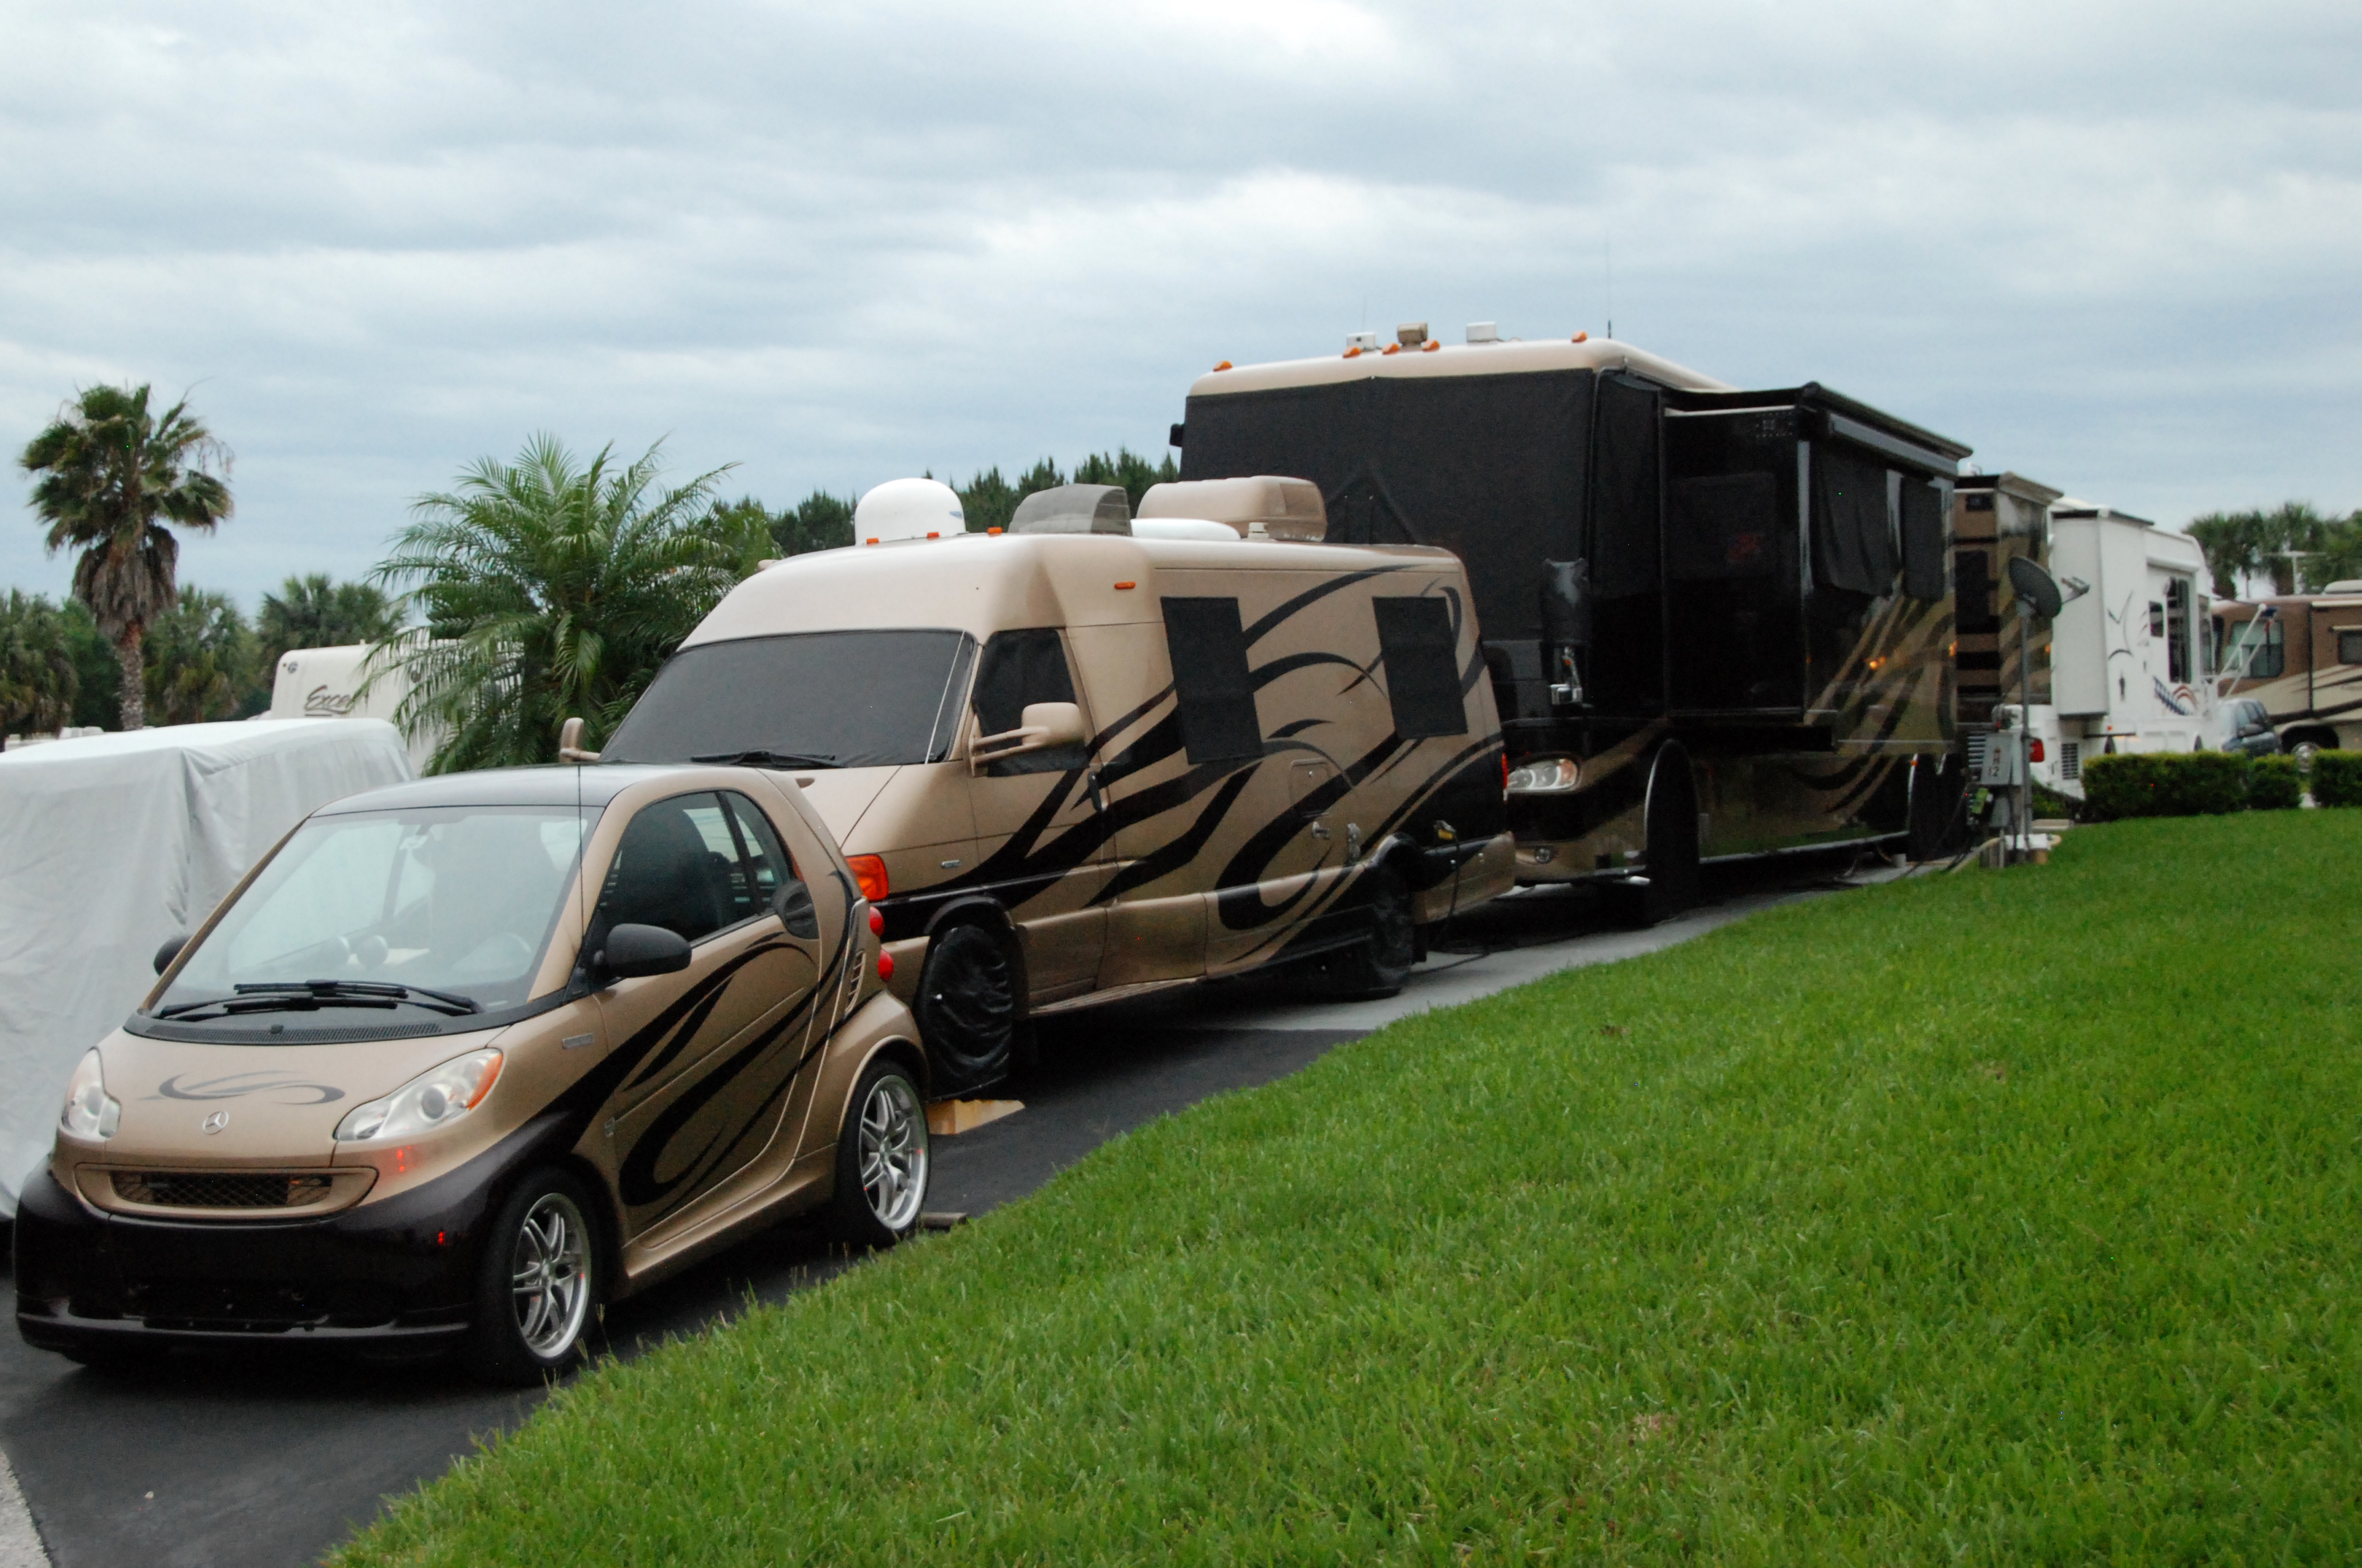 rv glamping tips shore looks nice many are downright ugly or plain we ve seen our share of custom paint jobs and it really spruces up the appeal some setups even have custom cars